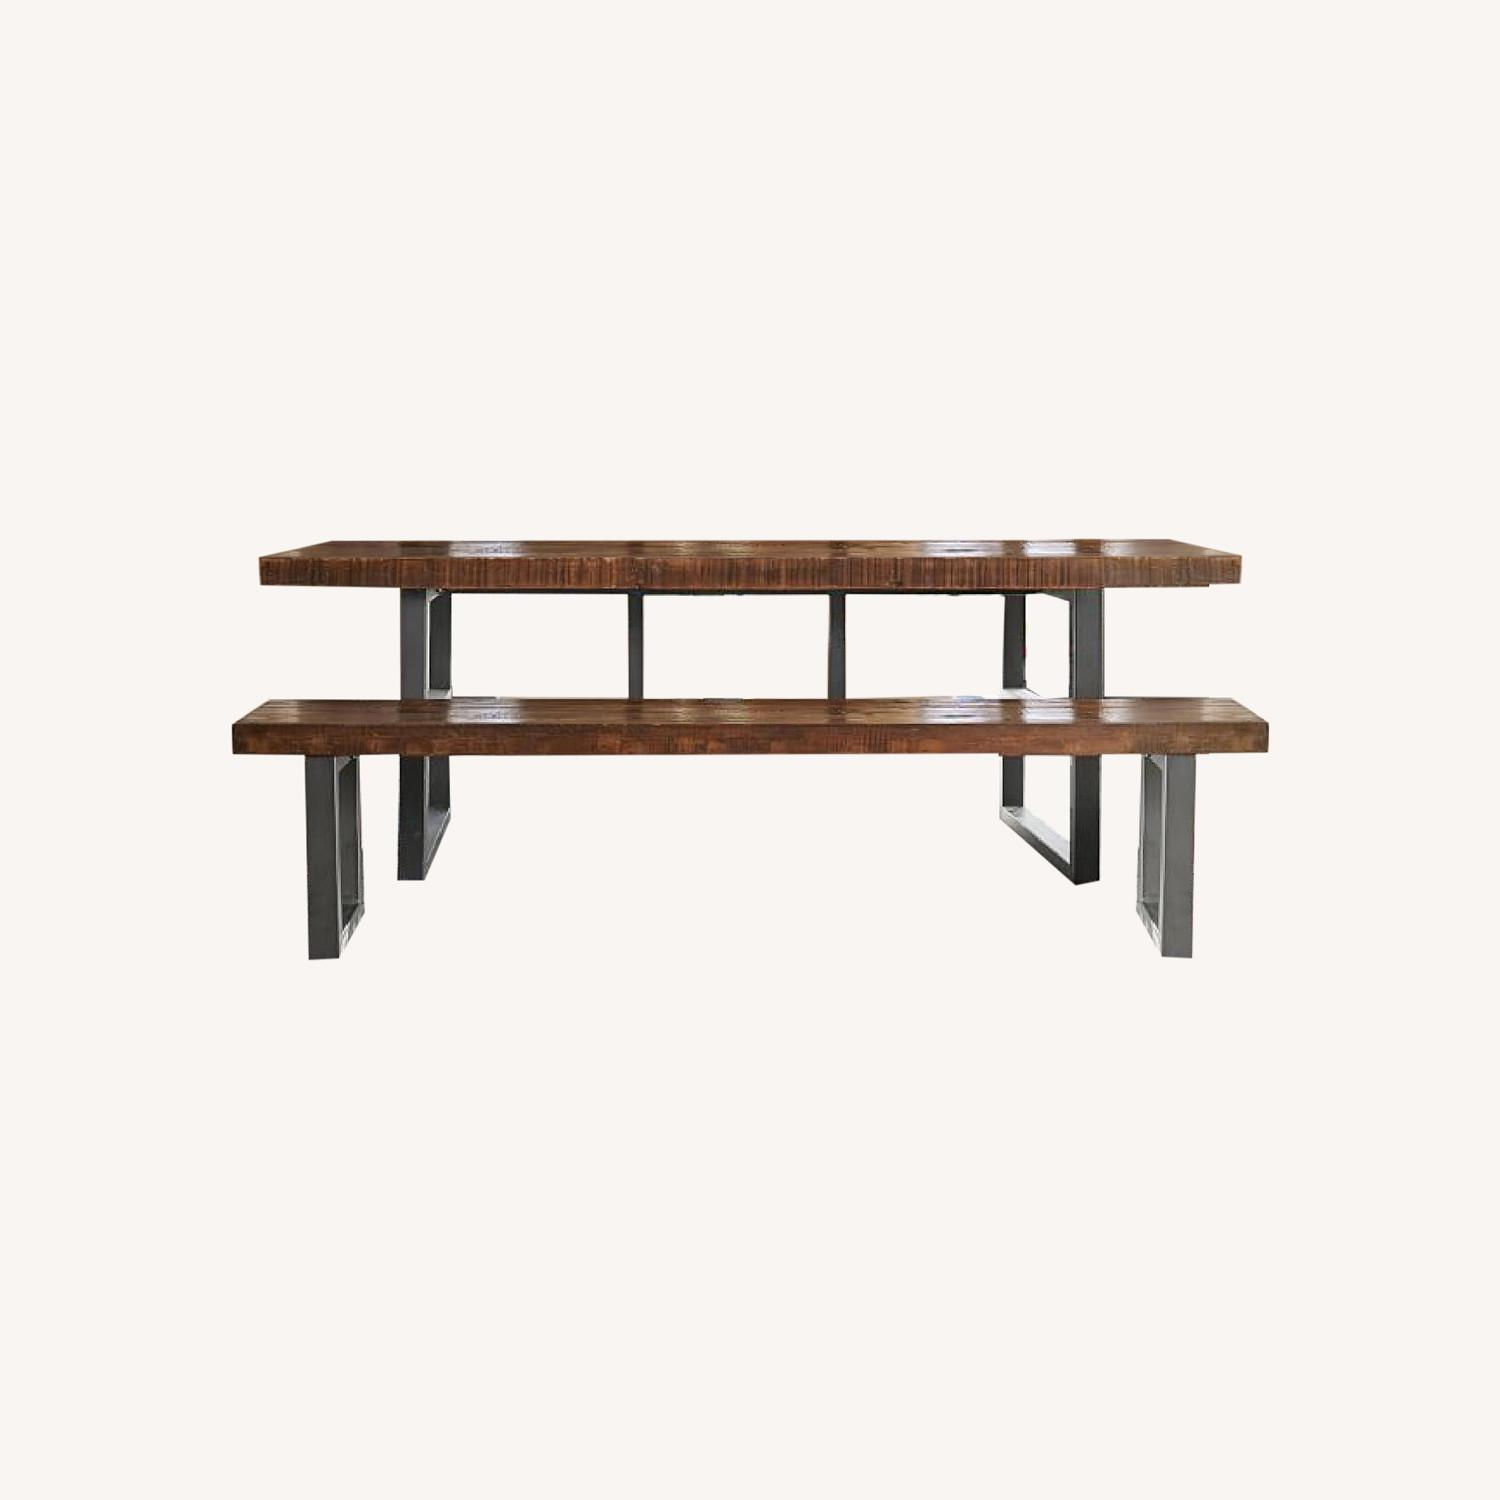 Pottery Barn Griffin Reclaimed Wood Dining Table - image-0